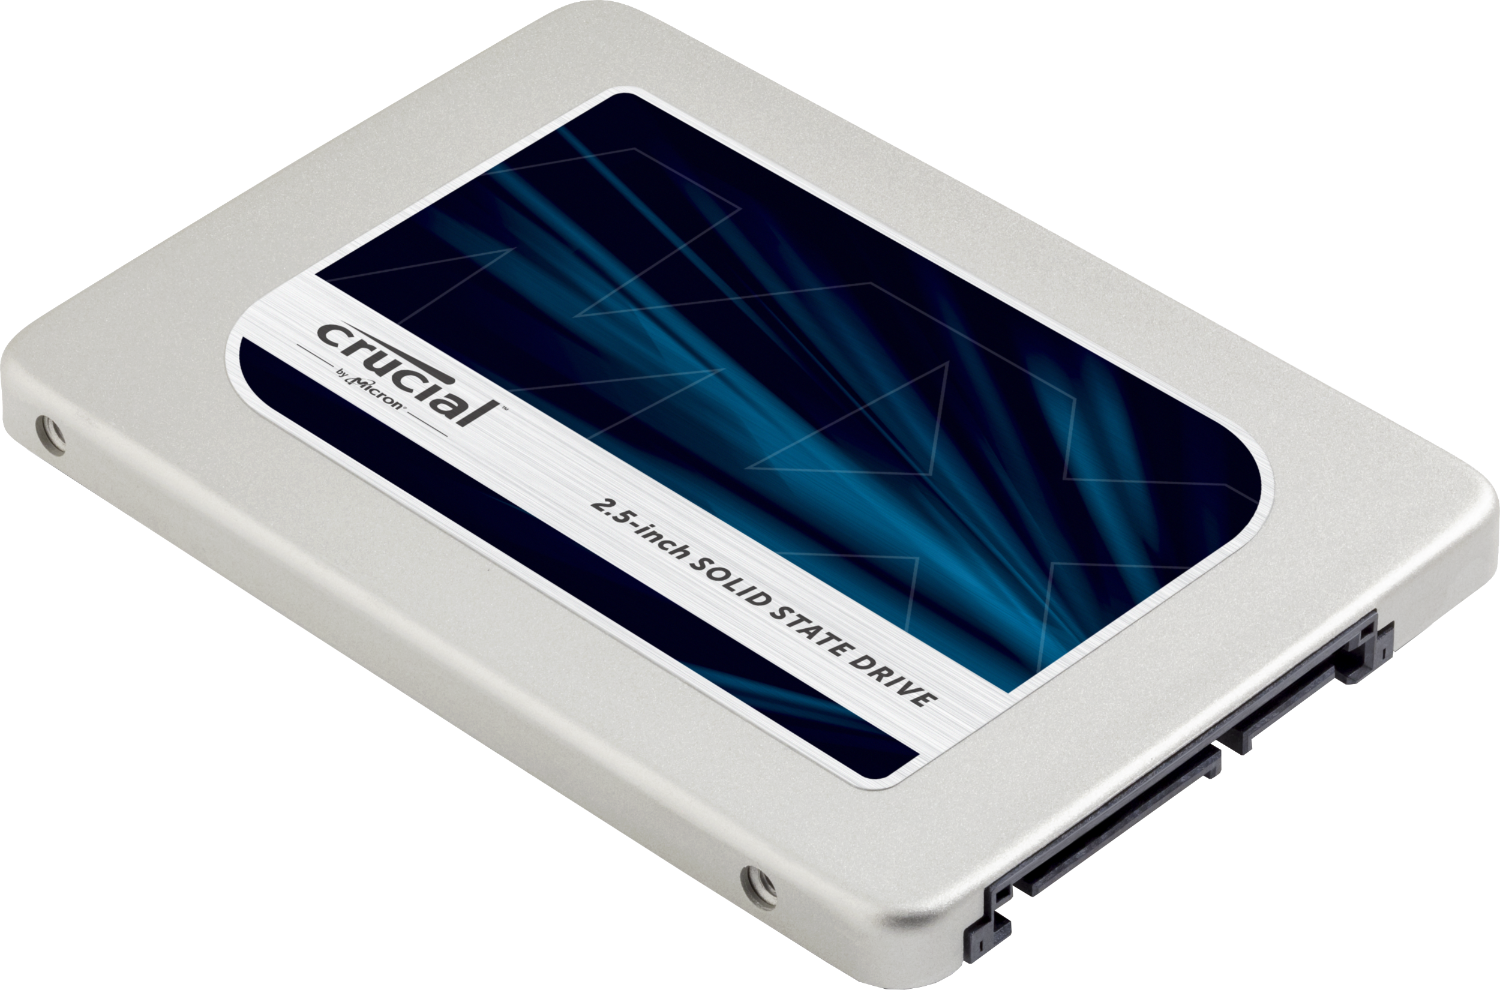 Crucial solid-state drive (SSD.)